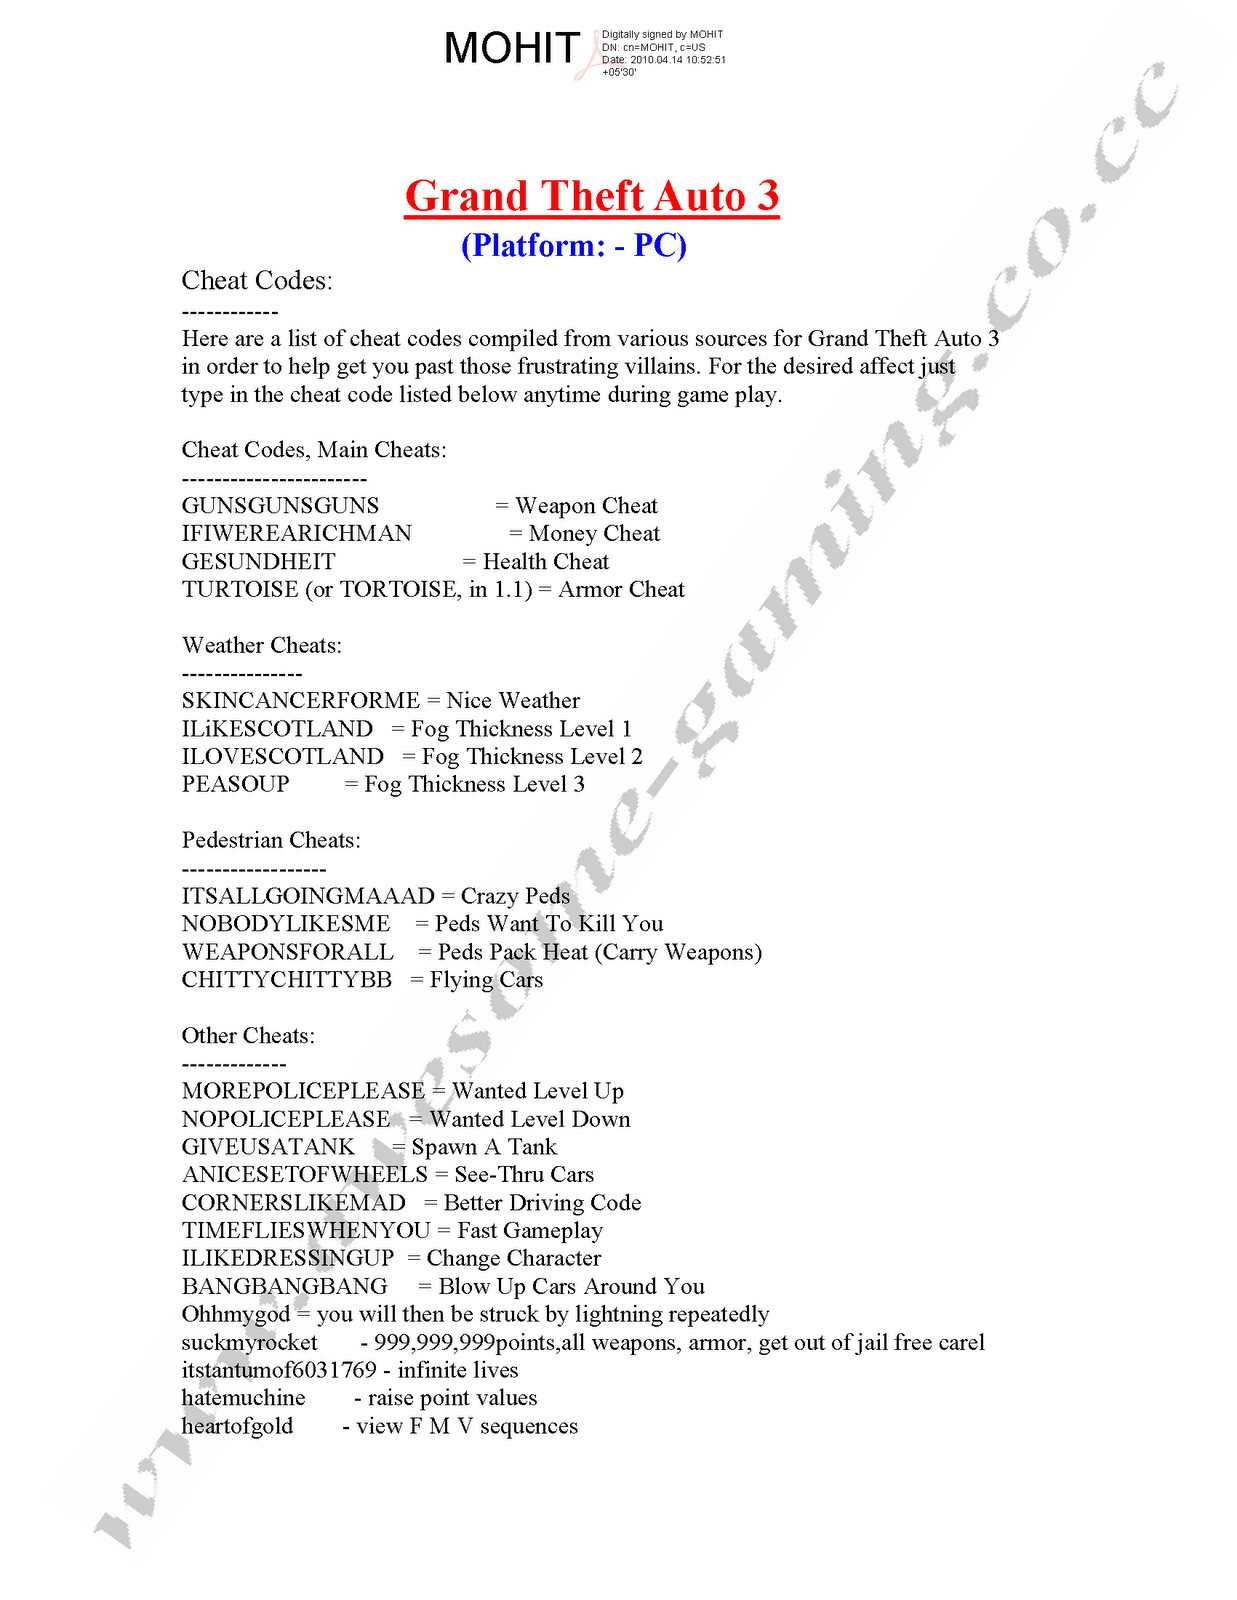 CHEAT CODE FOR GRAND THEFT AUTO 3 (PC Versioin)